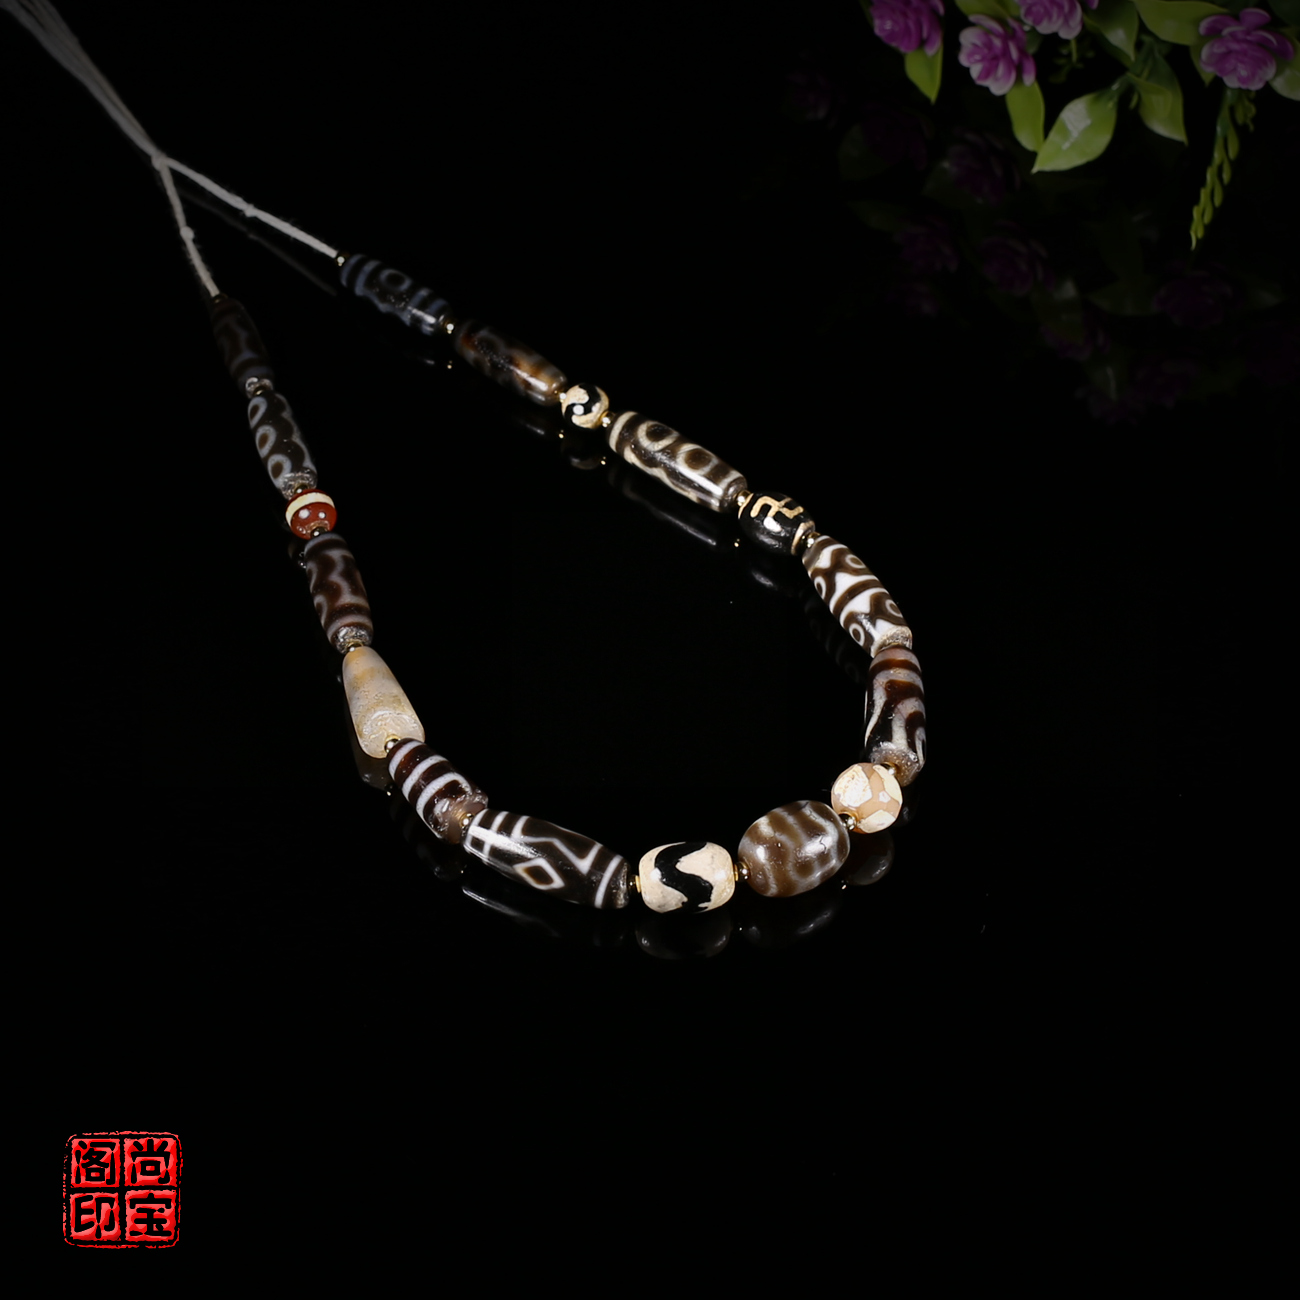 e01767= Tibetan-coated pulp weathered multi-precious hand string beads bead with beads; A string of West Asian beads